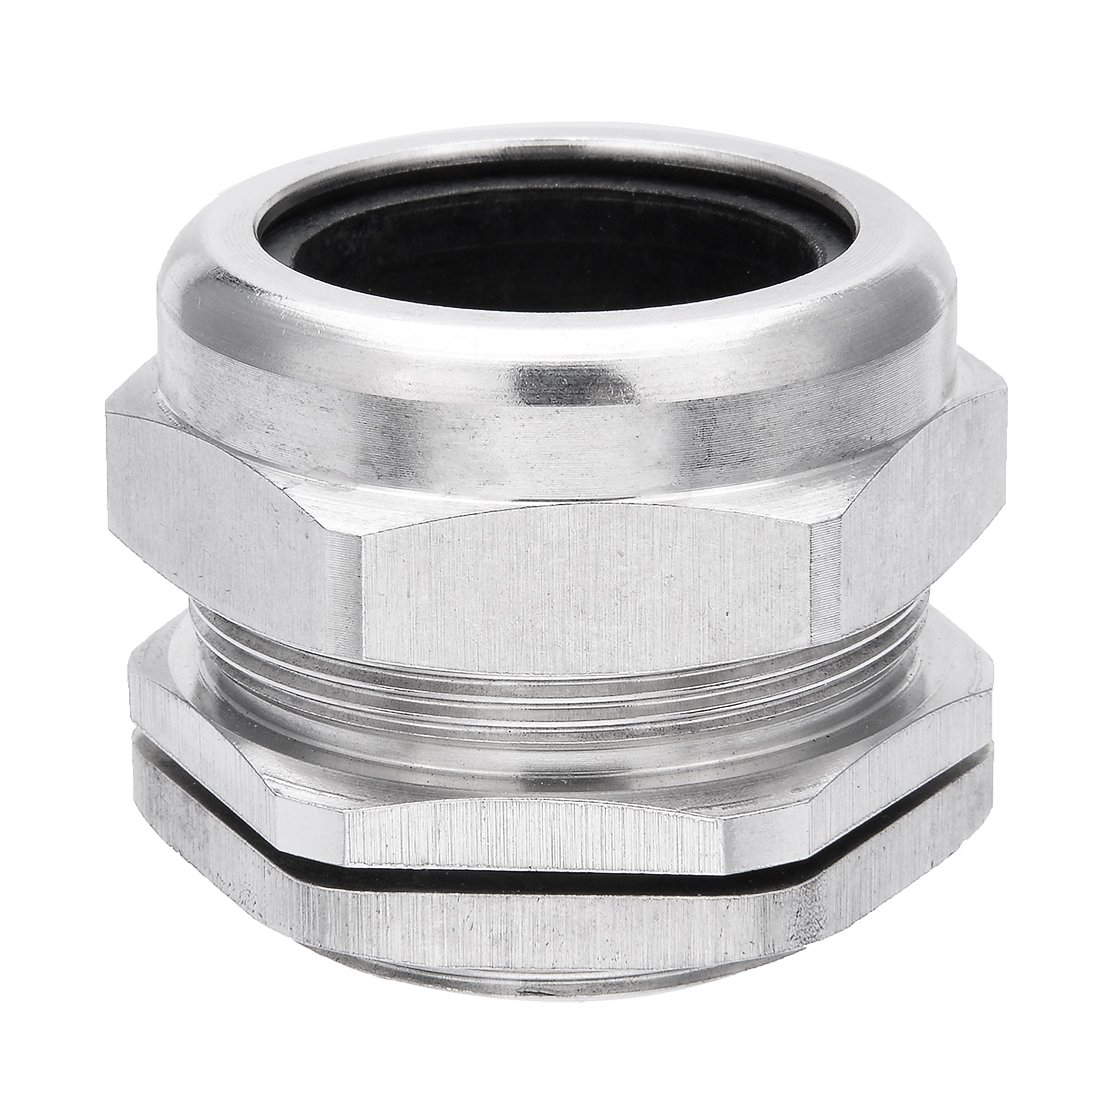 uxcell Cable Gland Waterproof G1-1/4 Stainless Steel Cable Glands Joints Adjustable Connector for 25-33mm Dia Cable